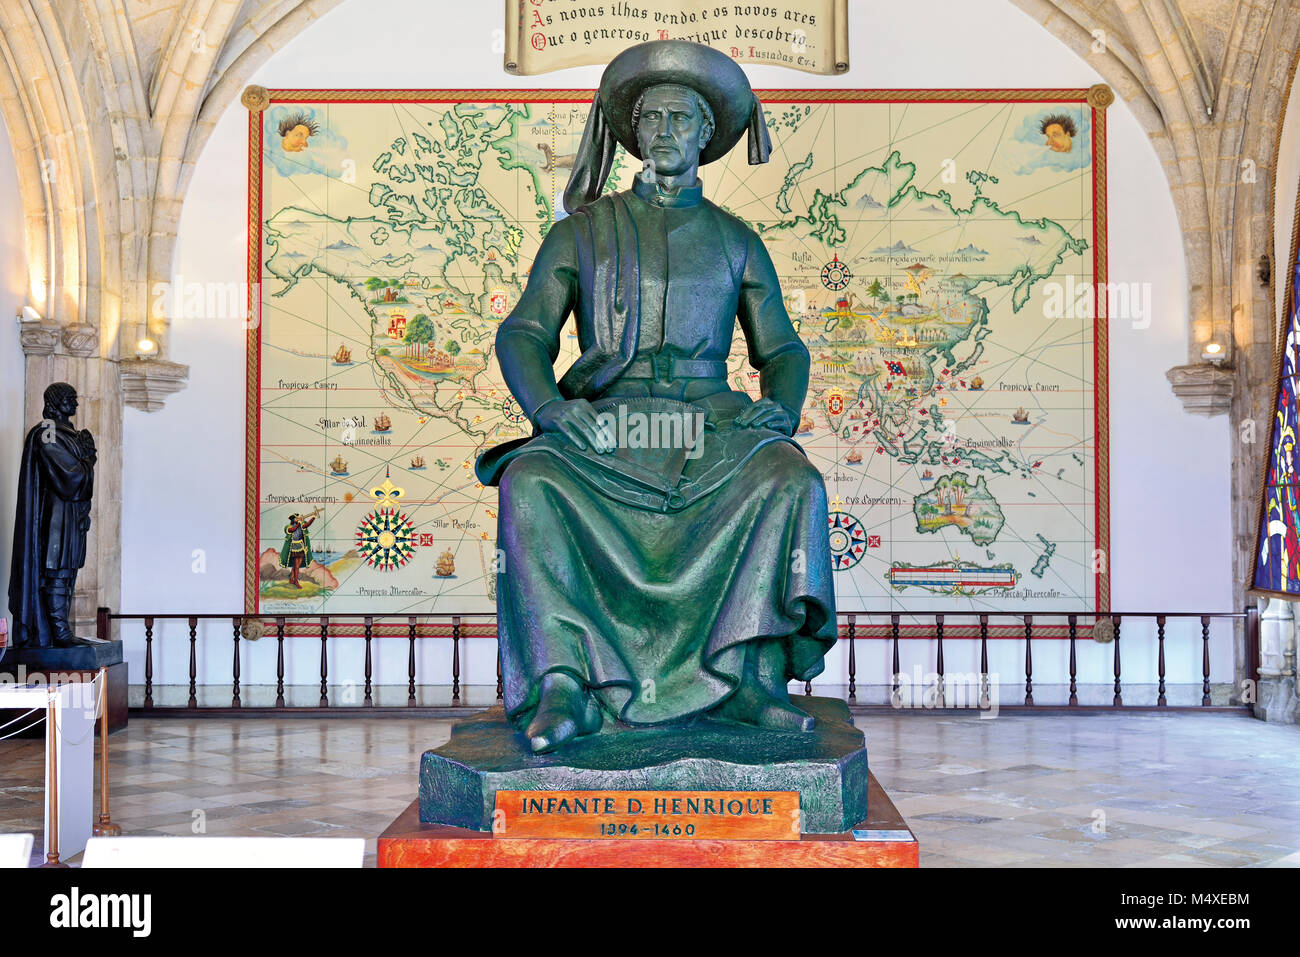 Statue of Prince Henry the Navigator in the Maritime Museum of Lisbon - Stock Image